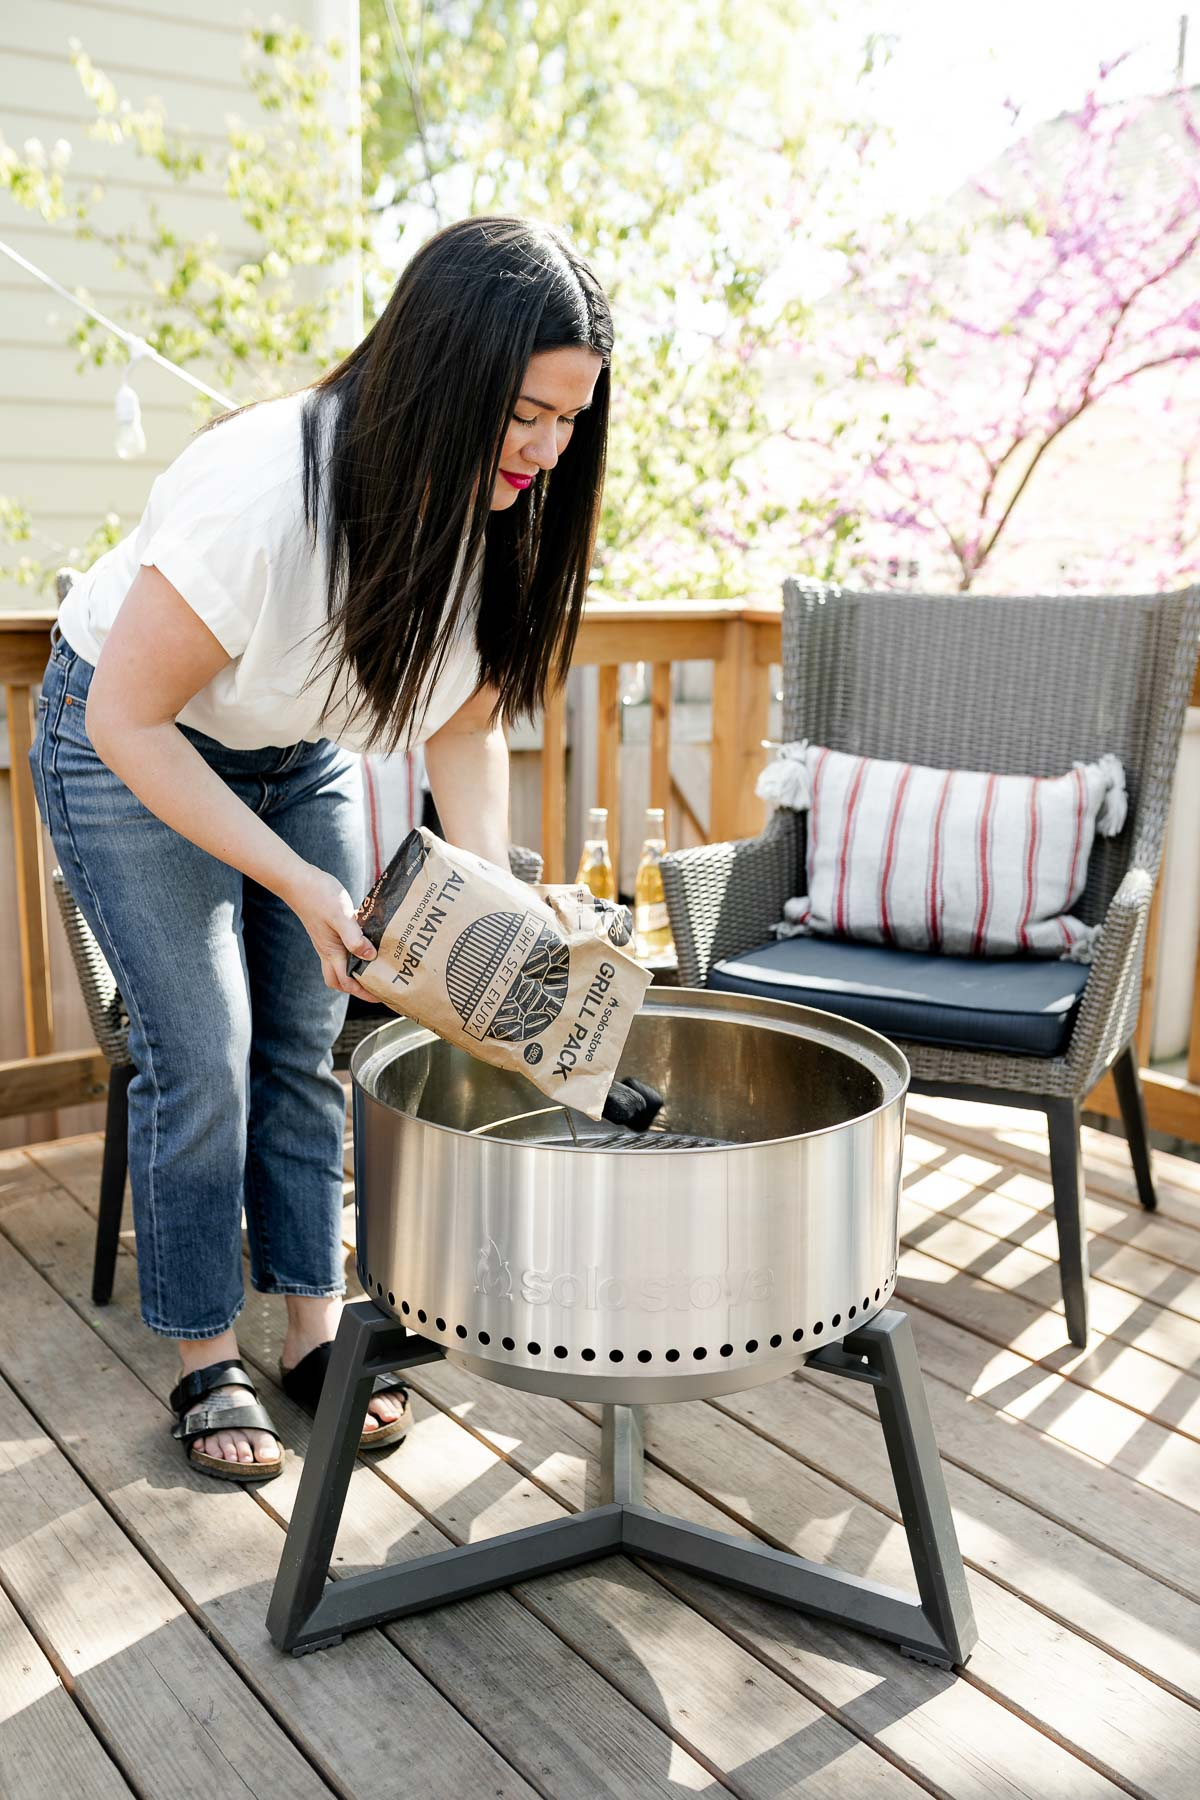 Jess of Plays Well With Butter setting up her Solo Stove Grill by filling with their all natural charcoal. Two gray patio chairs are set up behind the grill in the background, each with a red & white striped lumbar pillow on top of them. There is a small side table in between the two chairs with two Miller High Life beers on top.